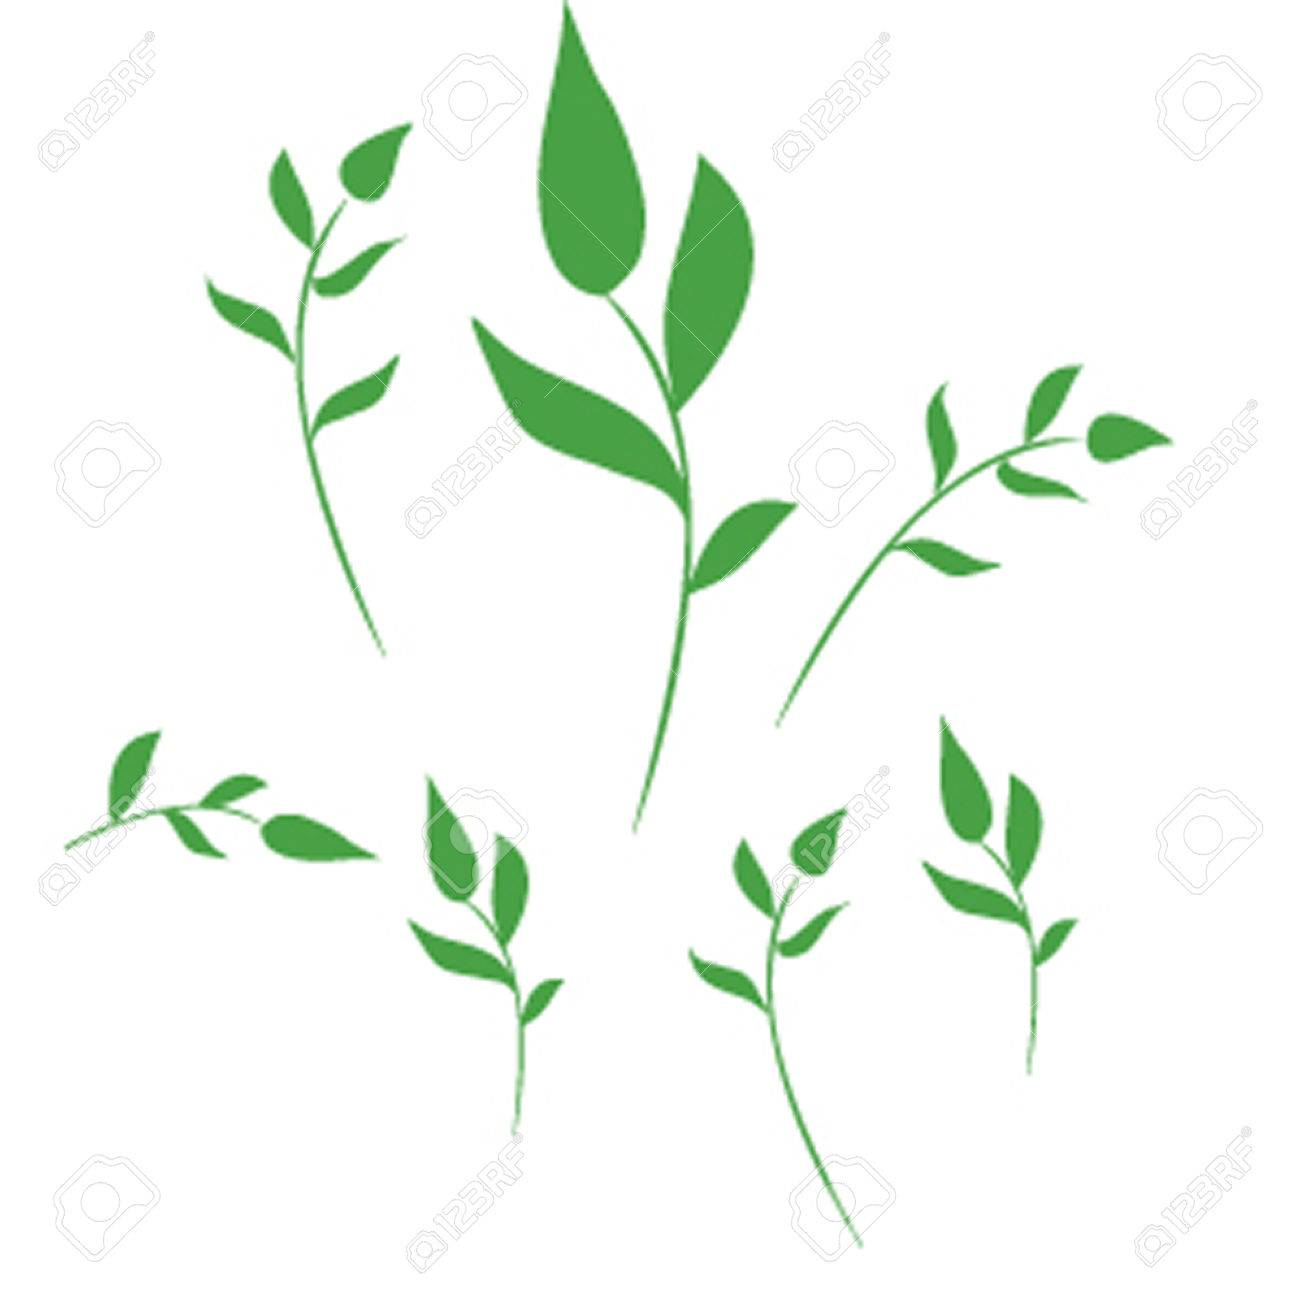 Please try to use the free vector file, Leaf file Stock Vector - 27552409